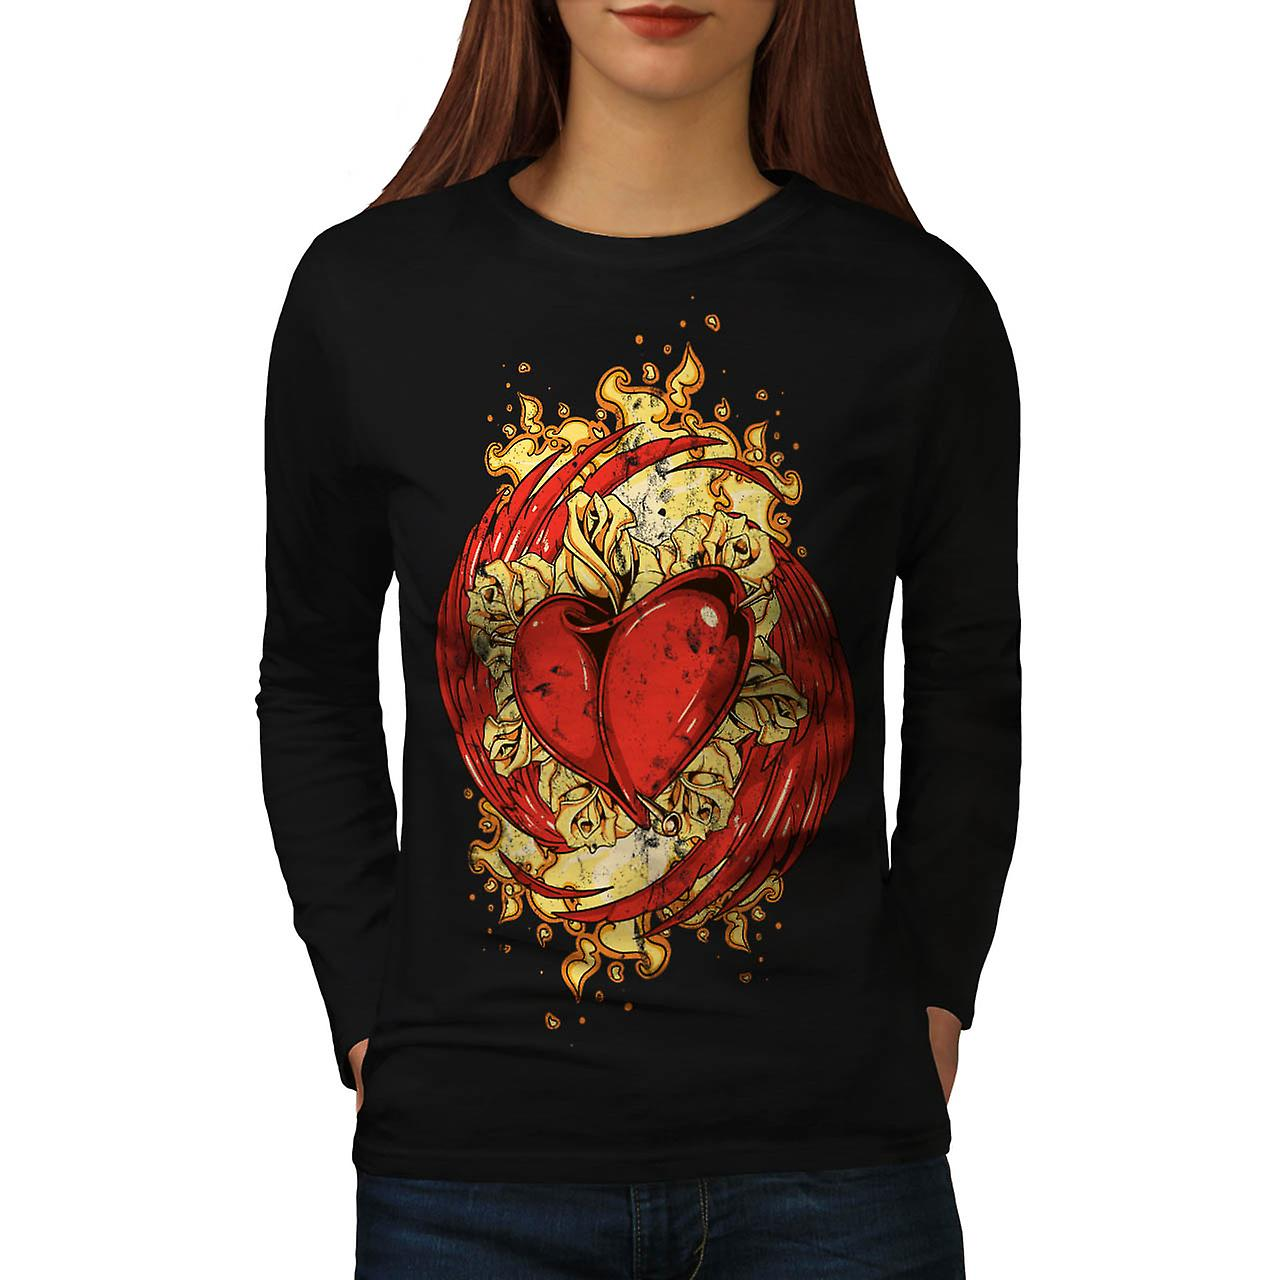 Amour coeur aile luxure battu orgue femmes noir Long Sleeve T-shirt | Wellcoda